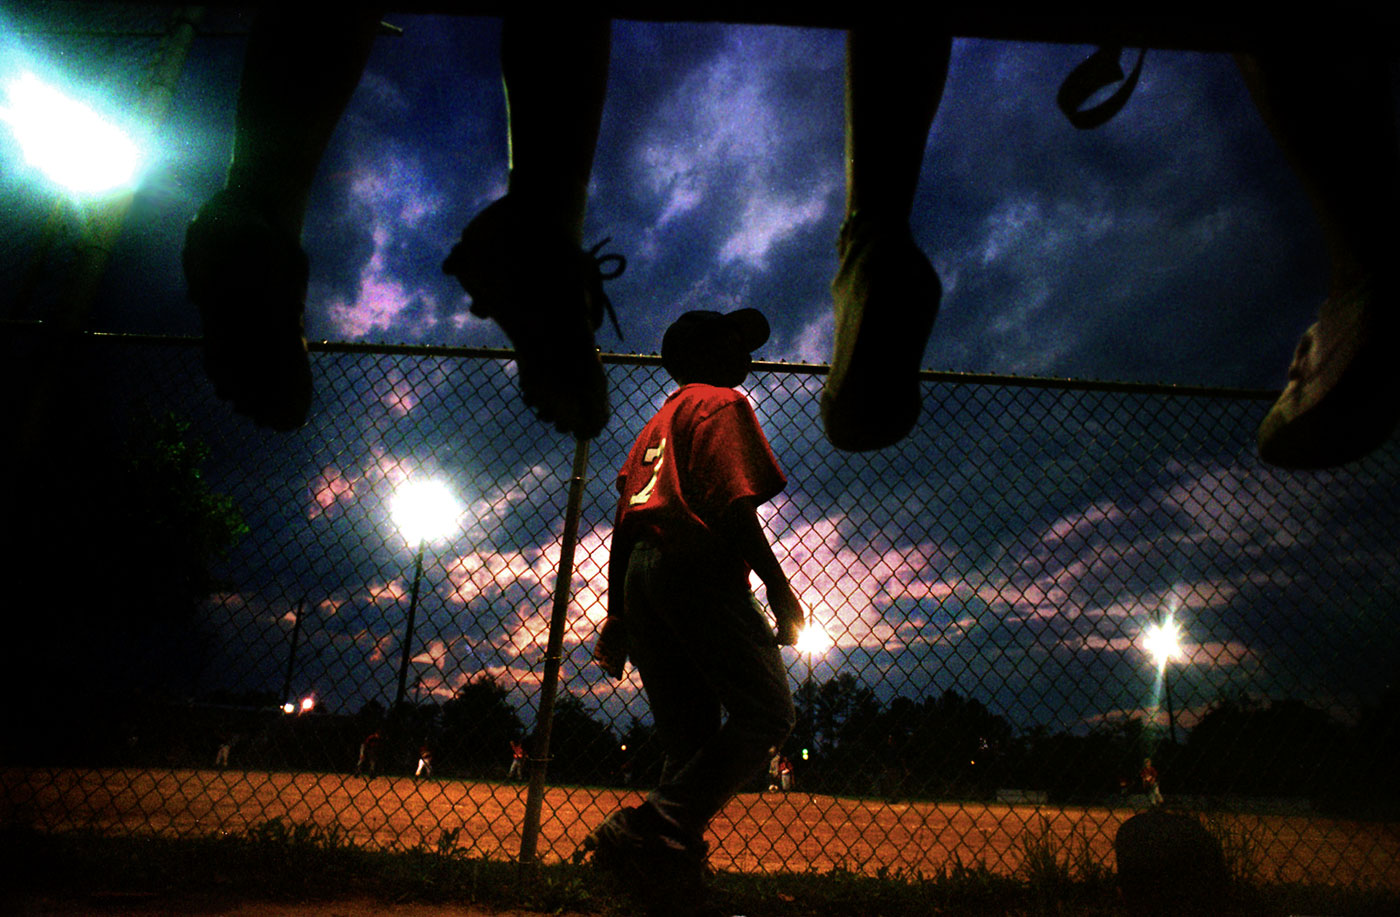 Korea Price paces along his dugout while waiting for his turn to bat during one of his team's Little League baseball games in Durham, North Carolina.